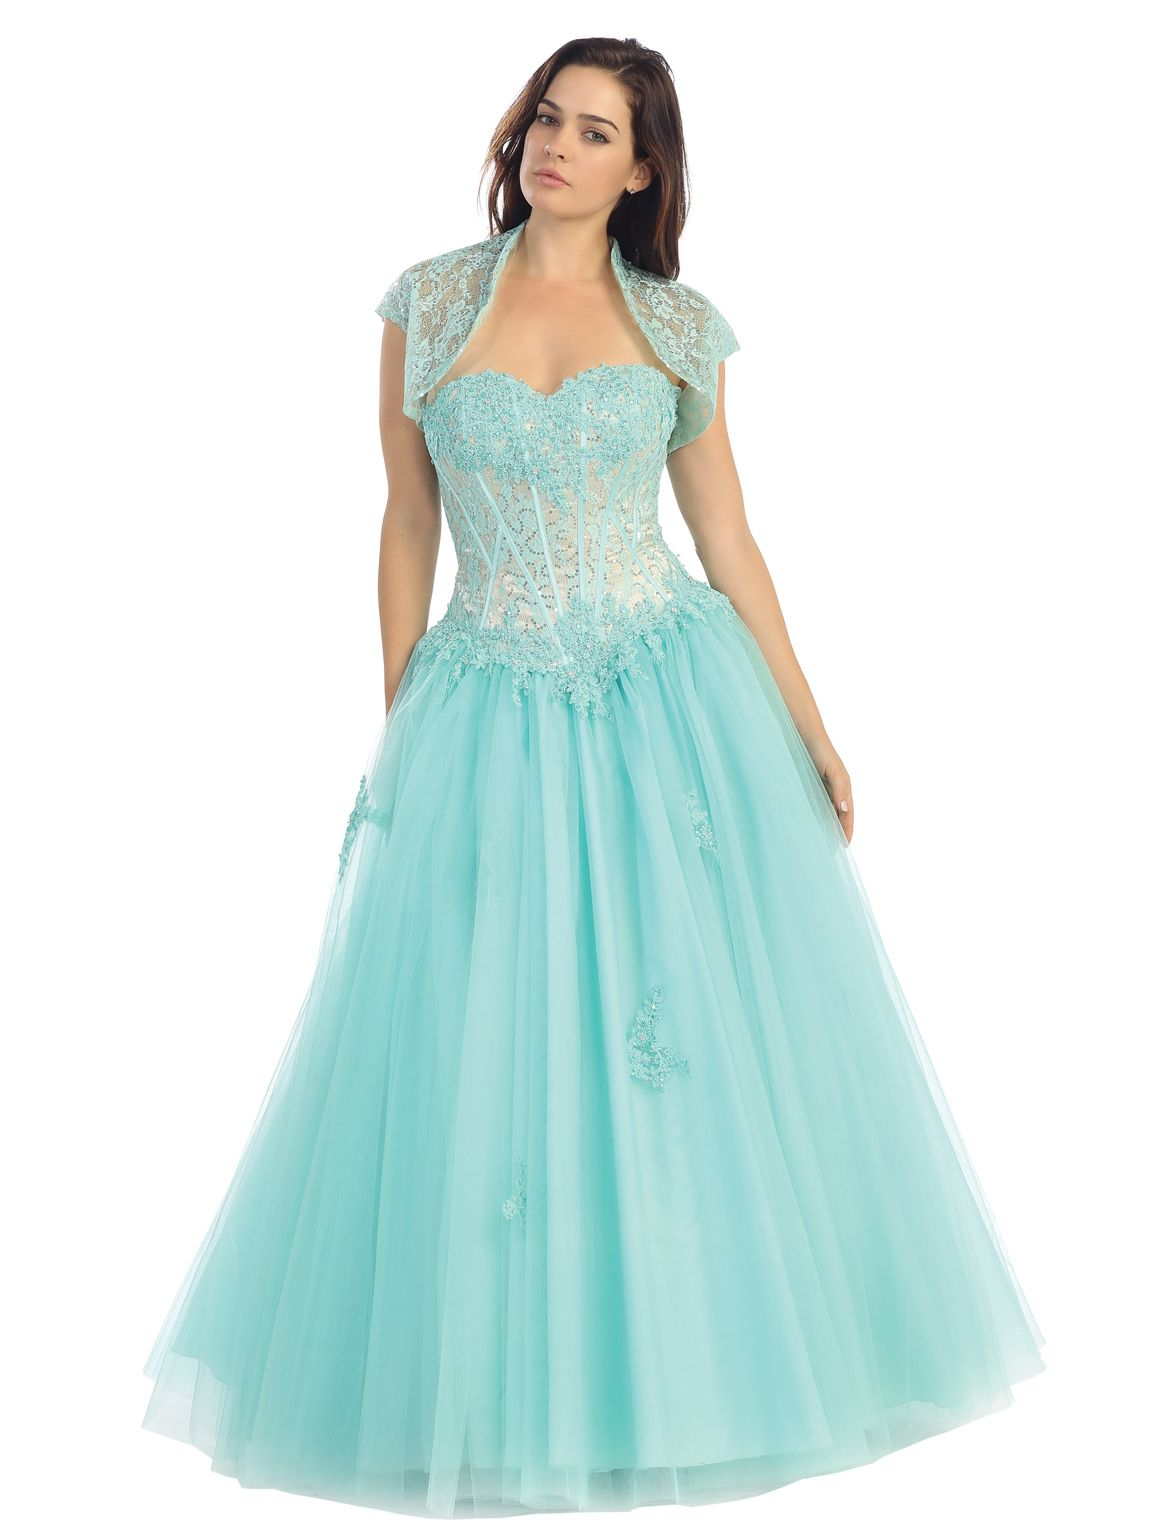 Timeless and Elegant Evening Ball Gown with Bolero | Dresses ...